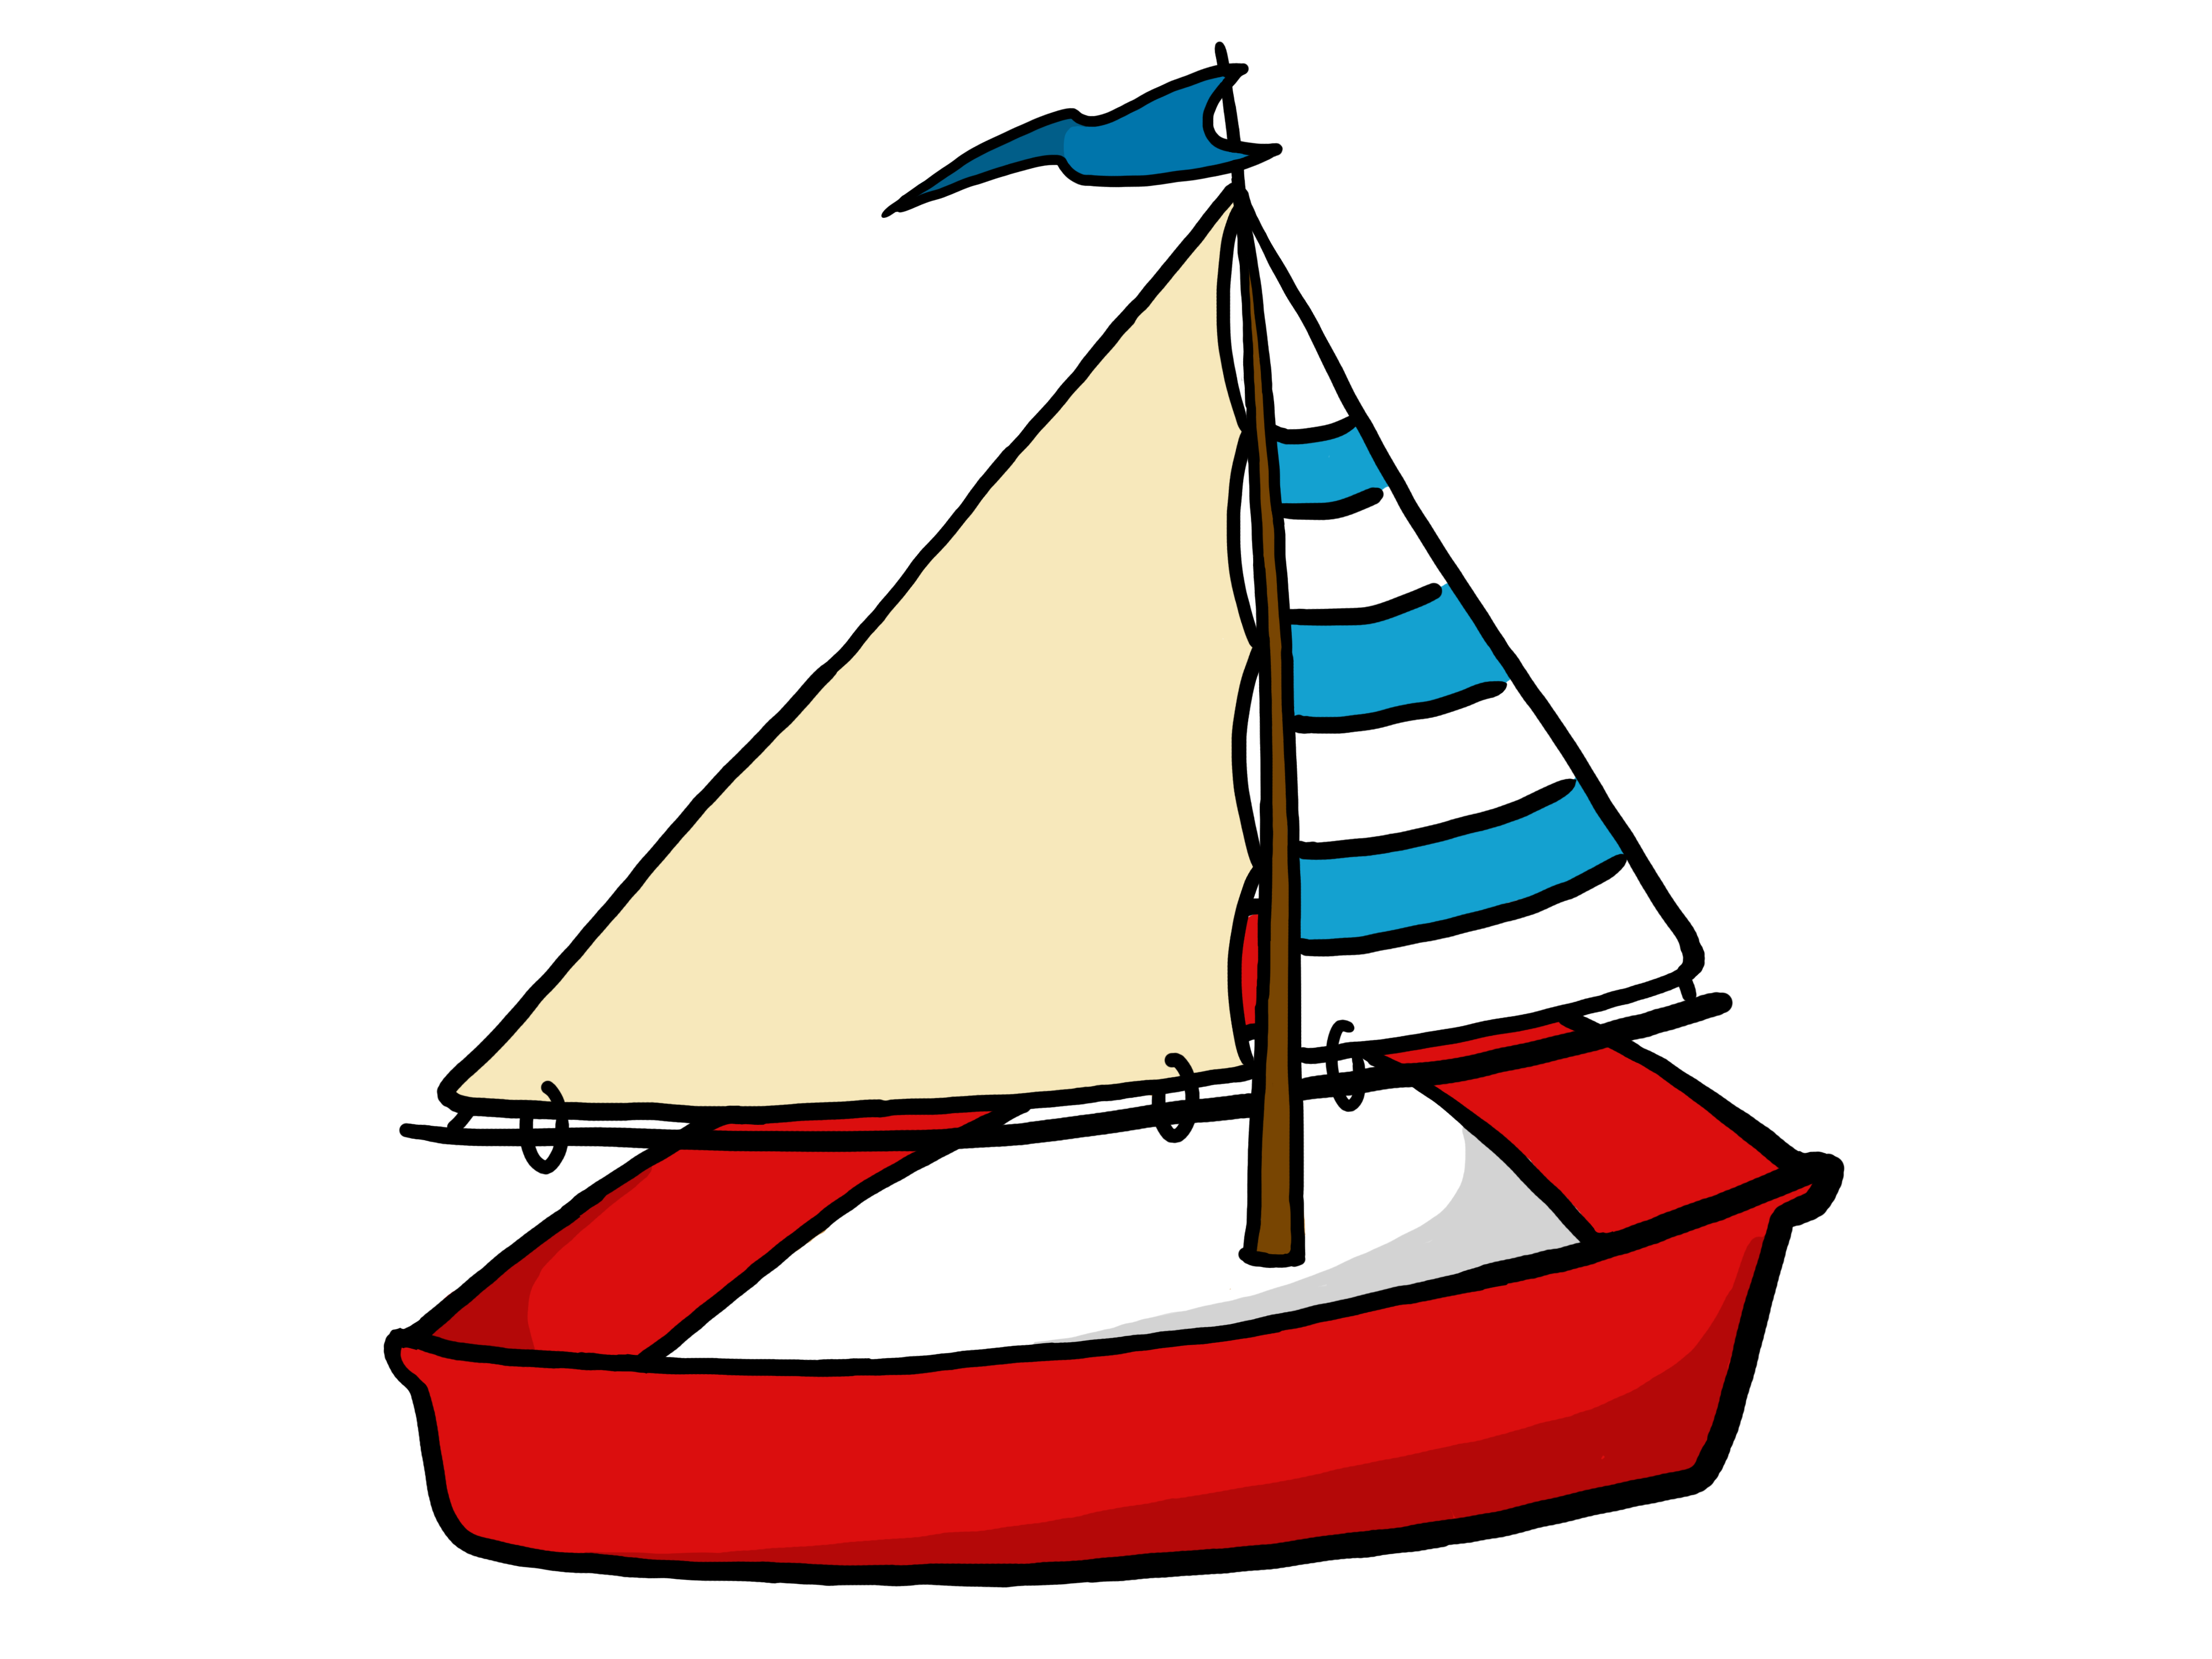 Simple sailboat clipart free images